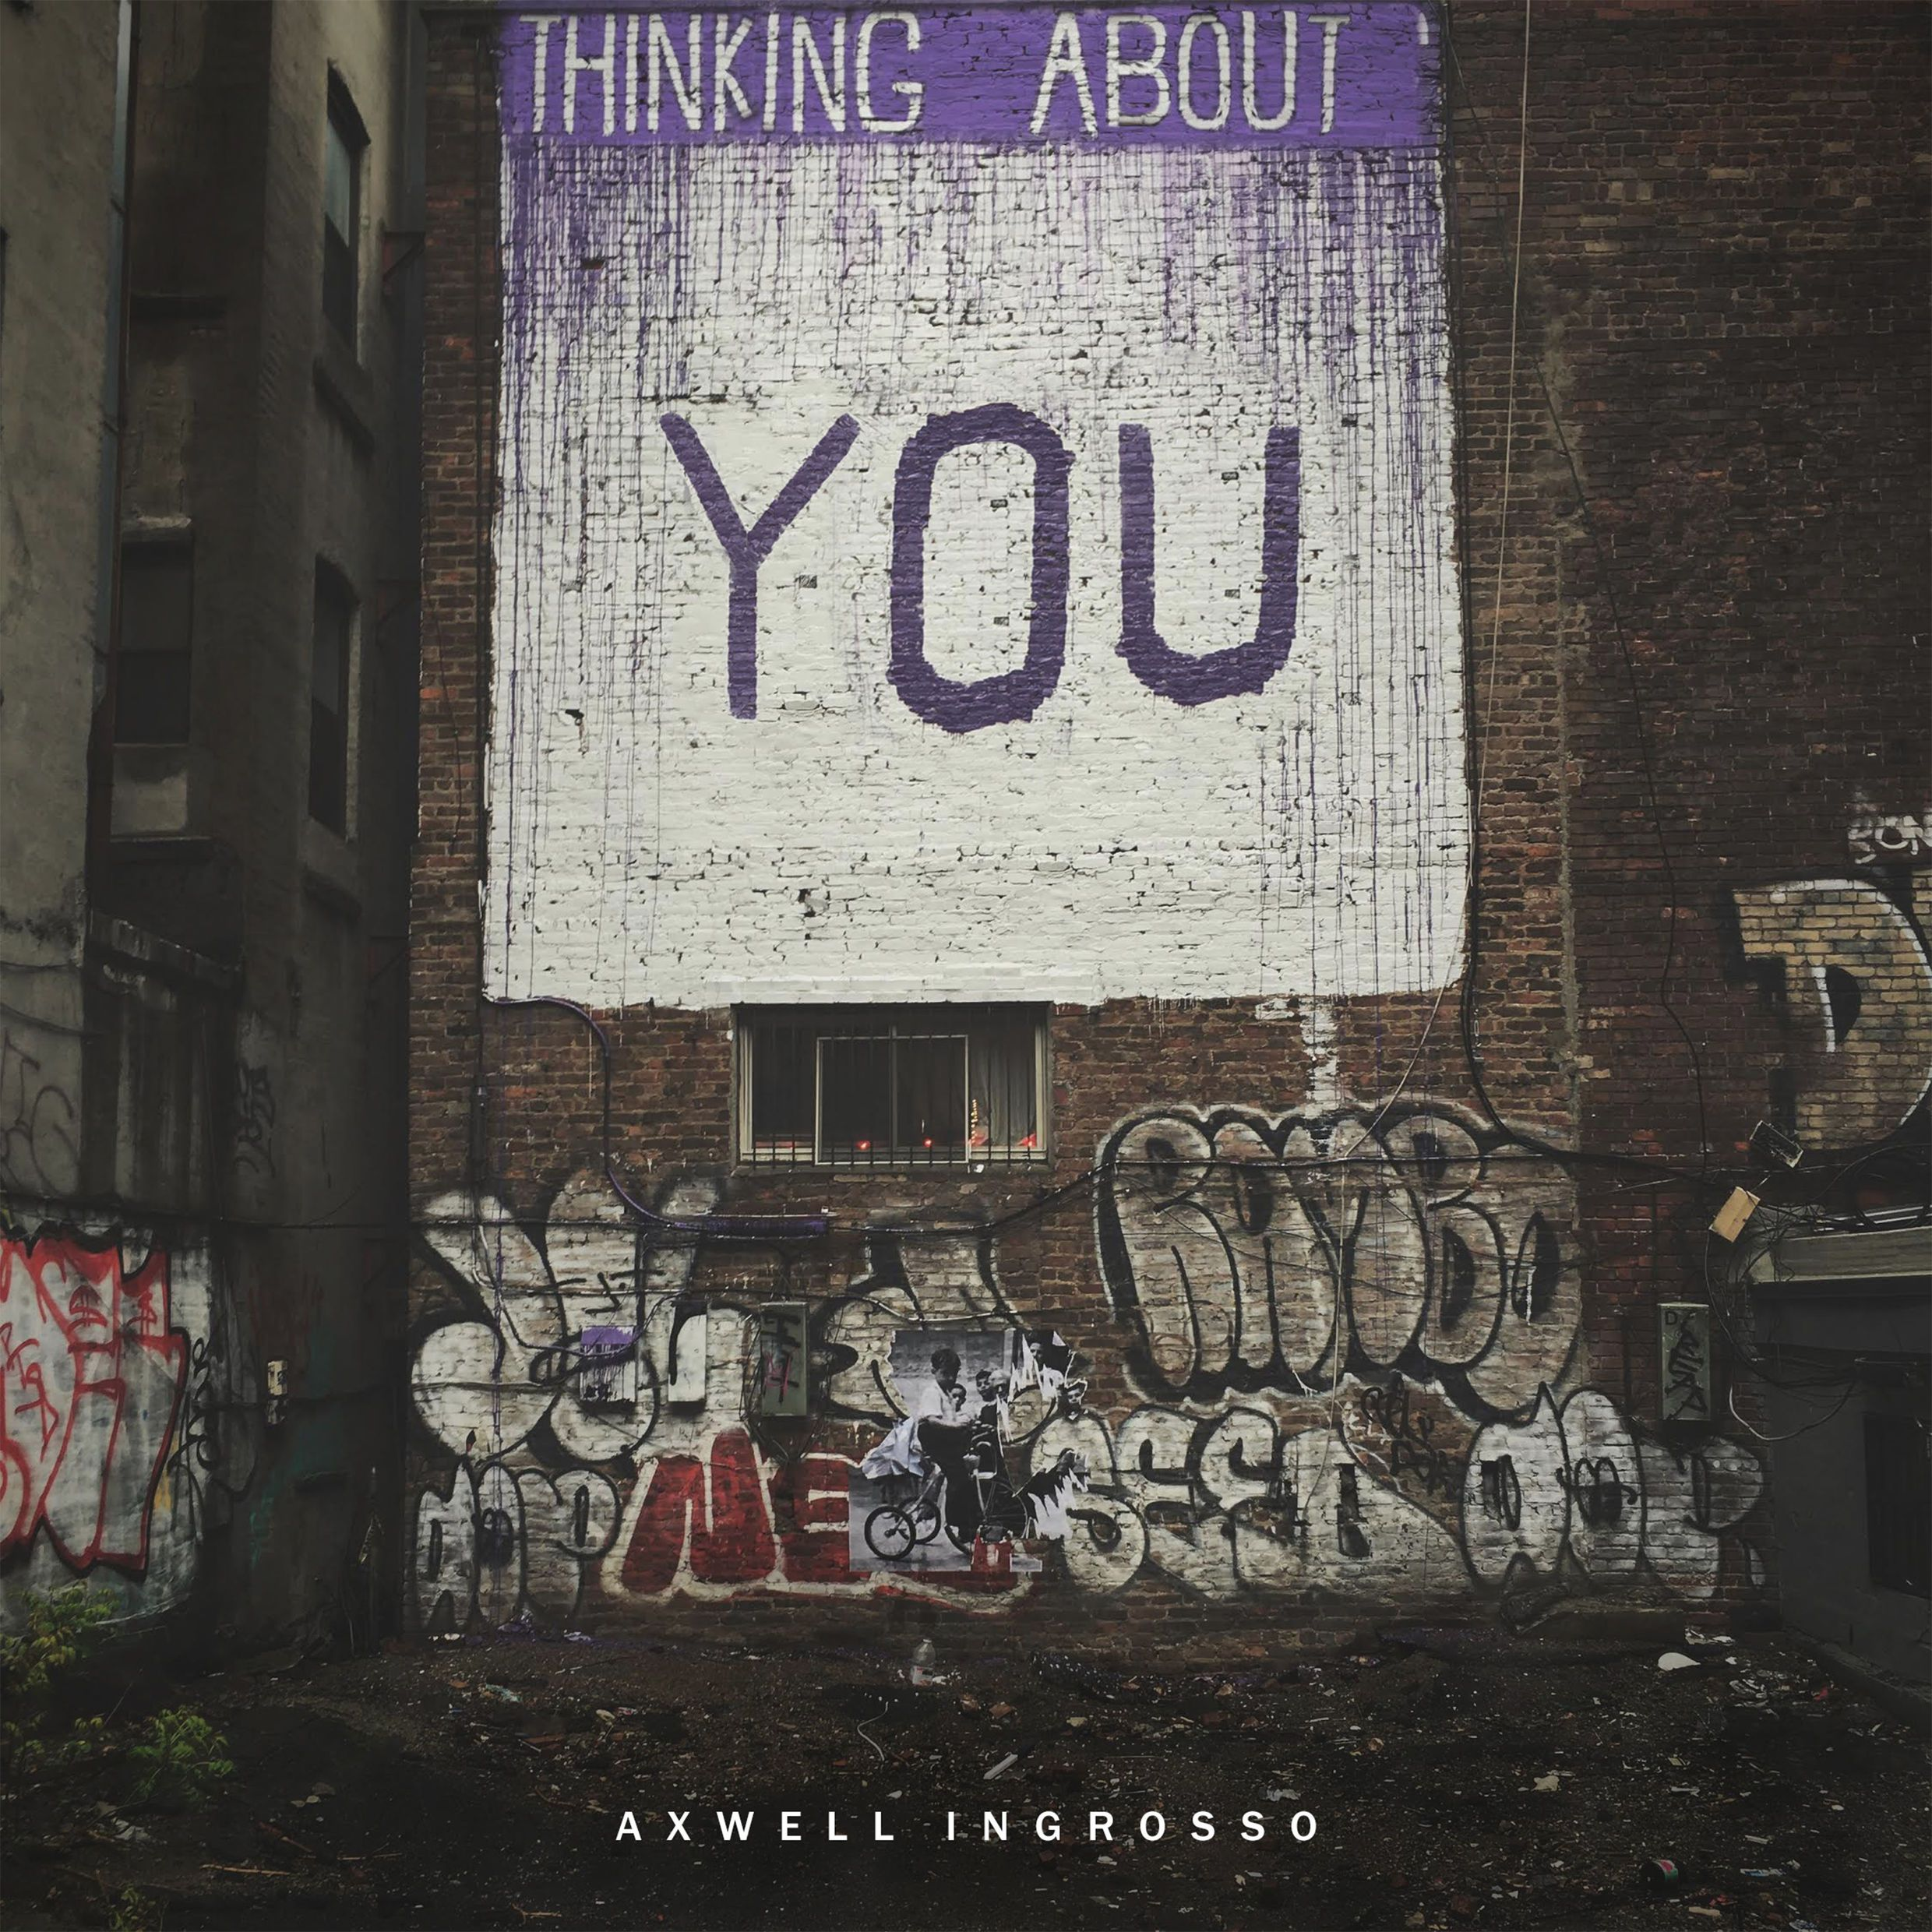 axwell-l-ingrosso-thinking-about-you-2016-2480x2480.jpg